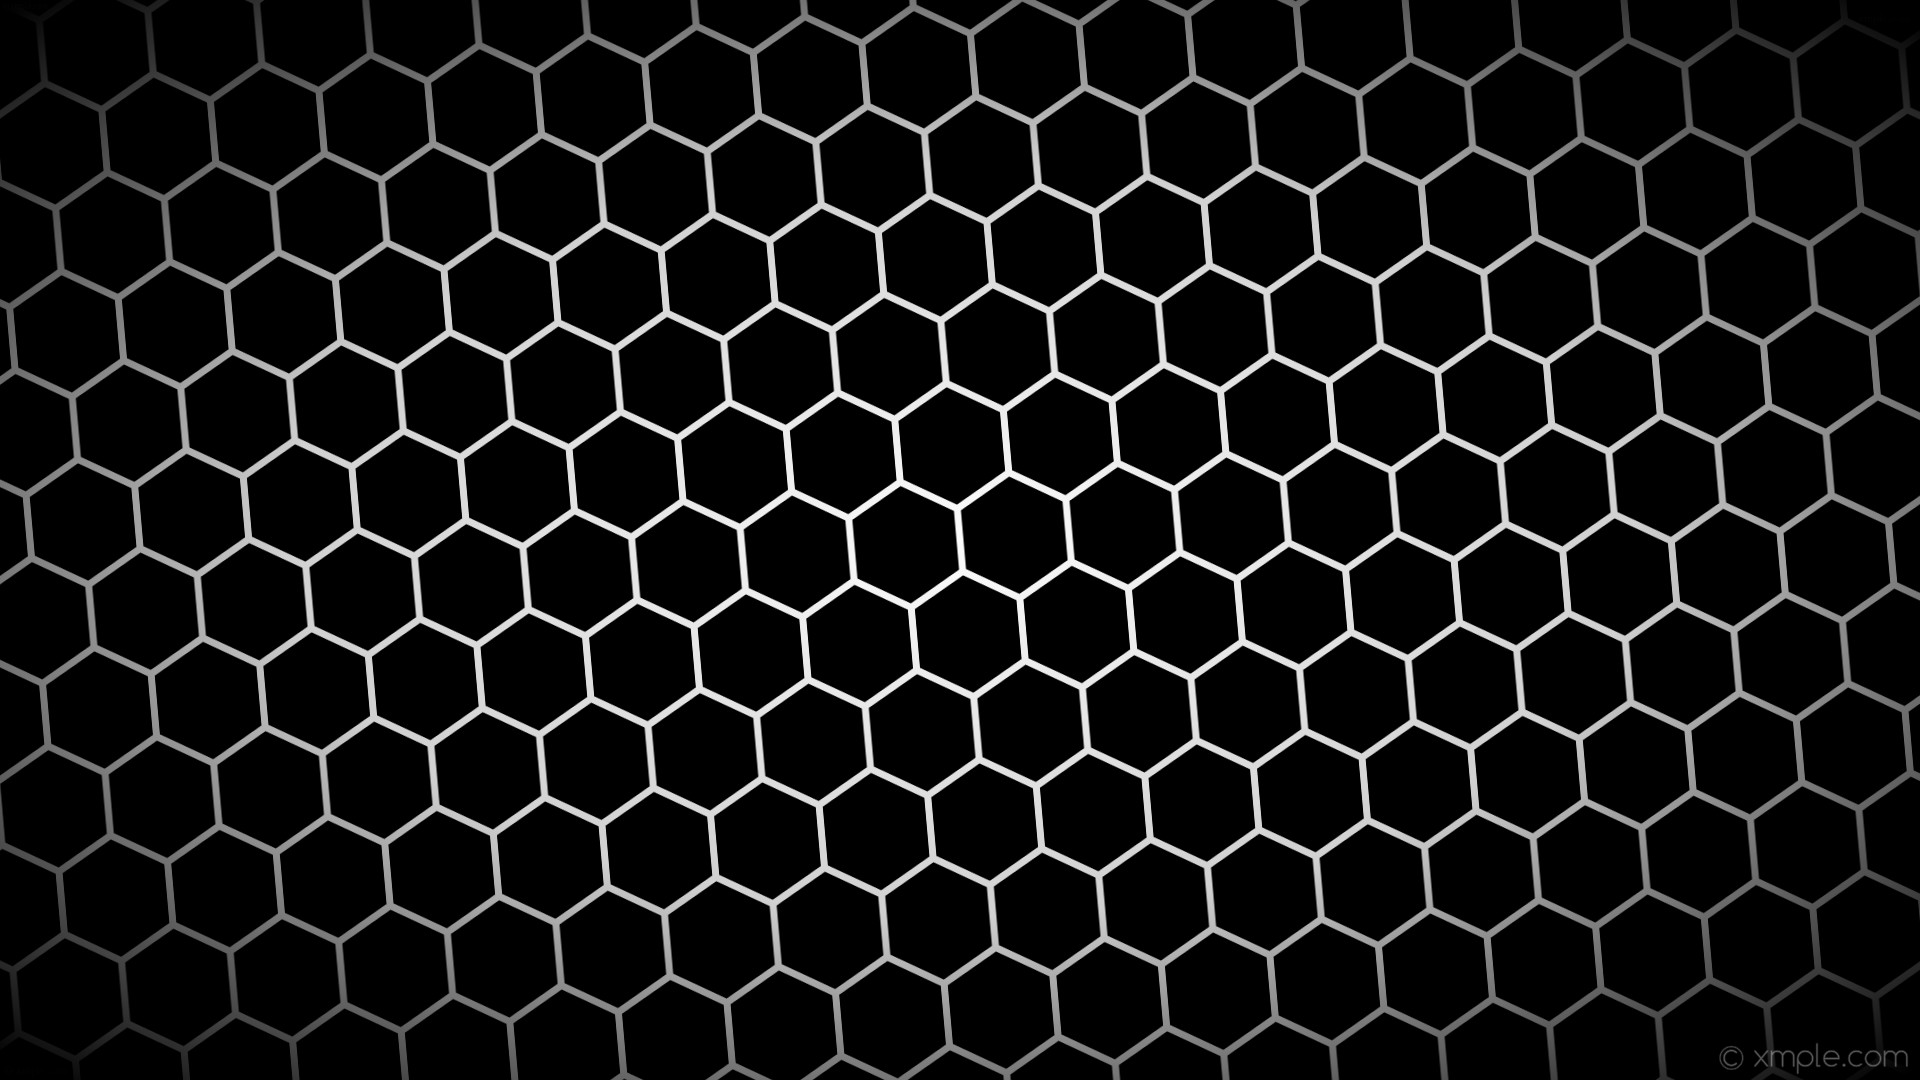 1920x1080 wallpaper black hexagon white gradient glow grey light gray #000000 #ffffff  #d3d3d3 diagonal